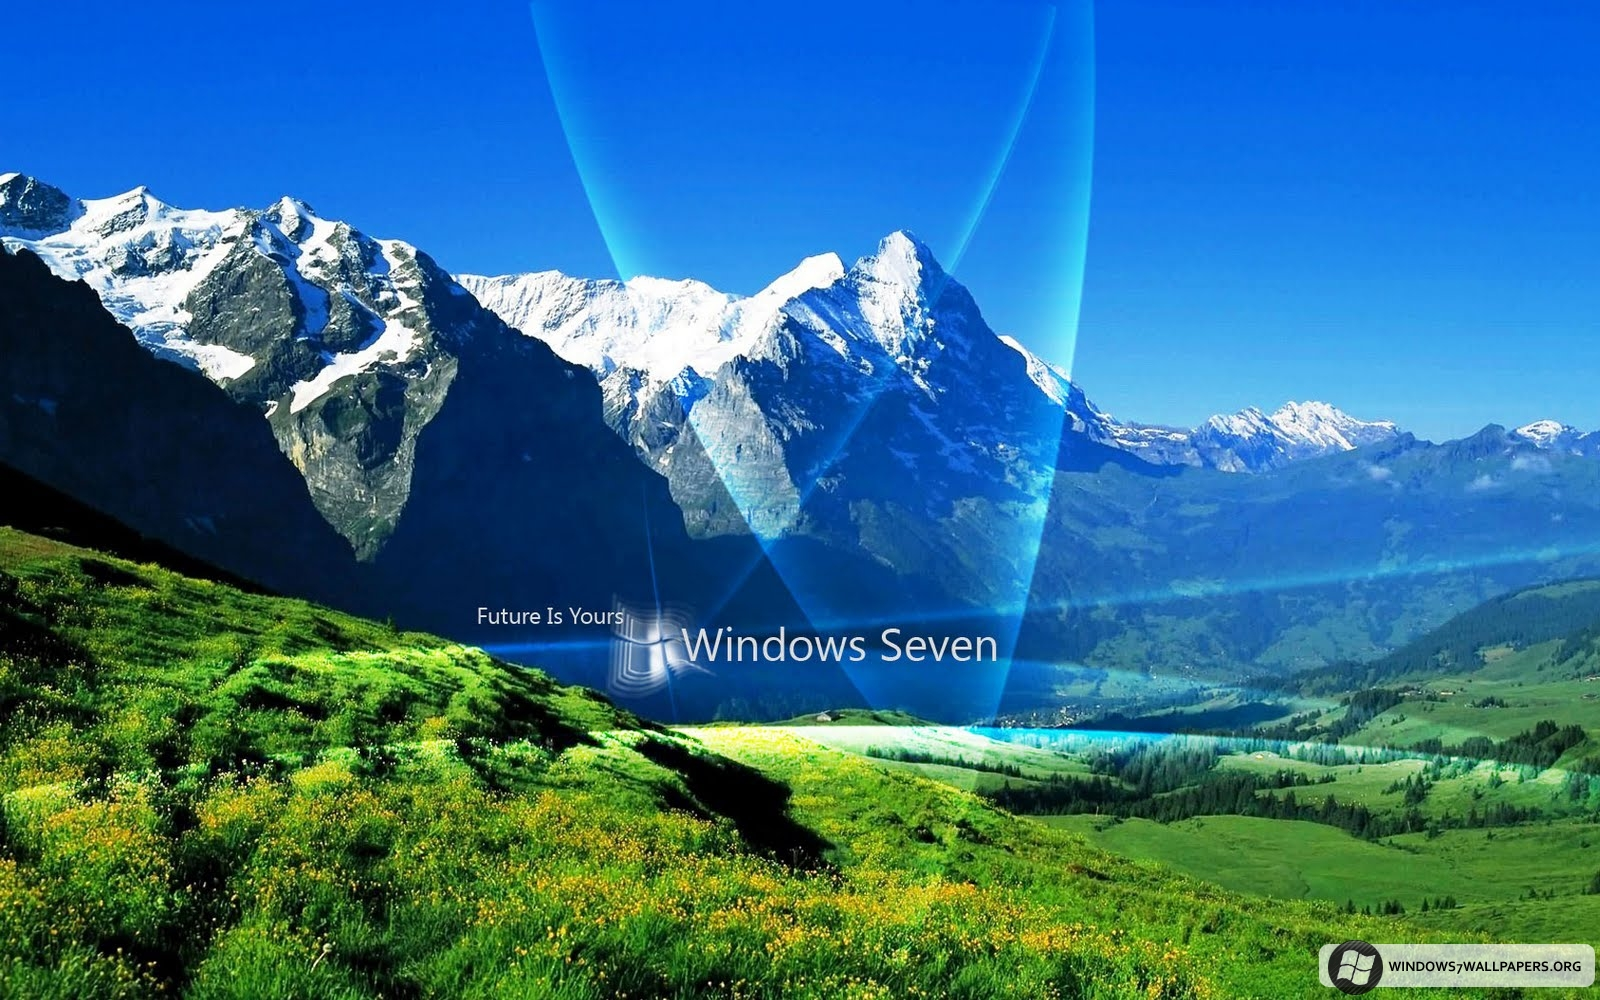 http://4.bp.blogspot.com/-a5RZtT-_Qx0/TVavrU0m1nI/AAAAAAAABWY/4mlWhpF34NY/s1600/Cool-natural-windows7-seven-desktop-wallpaper-1680x1050.jpg